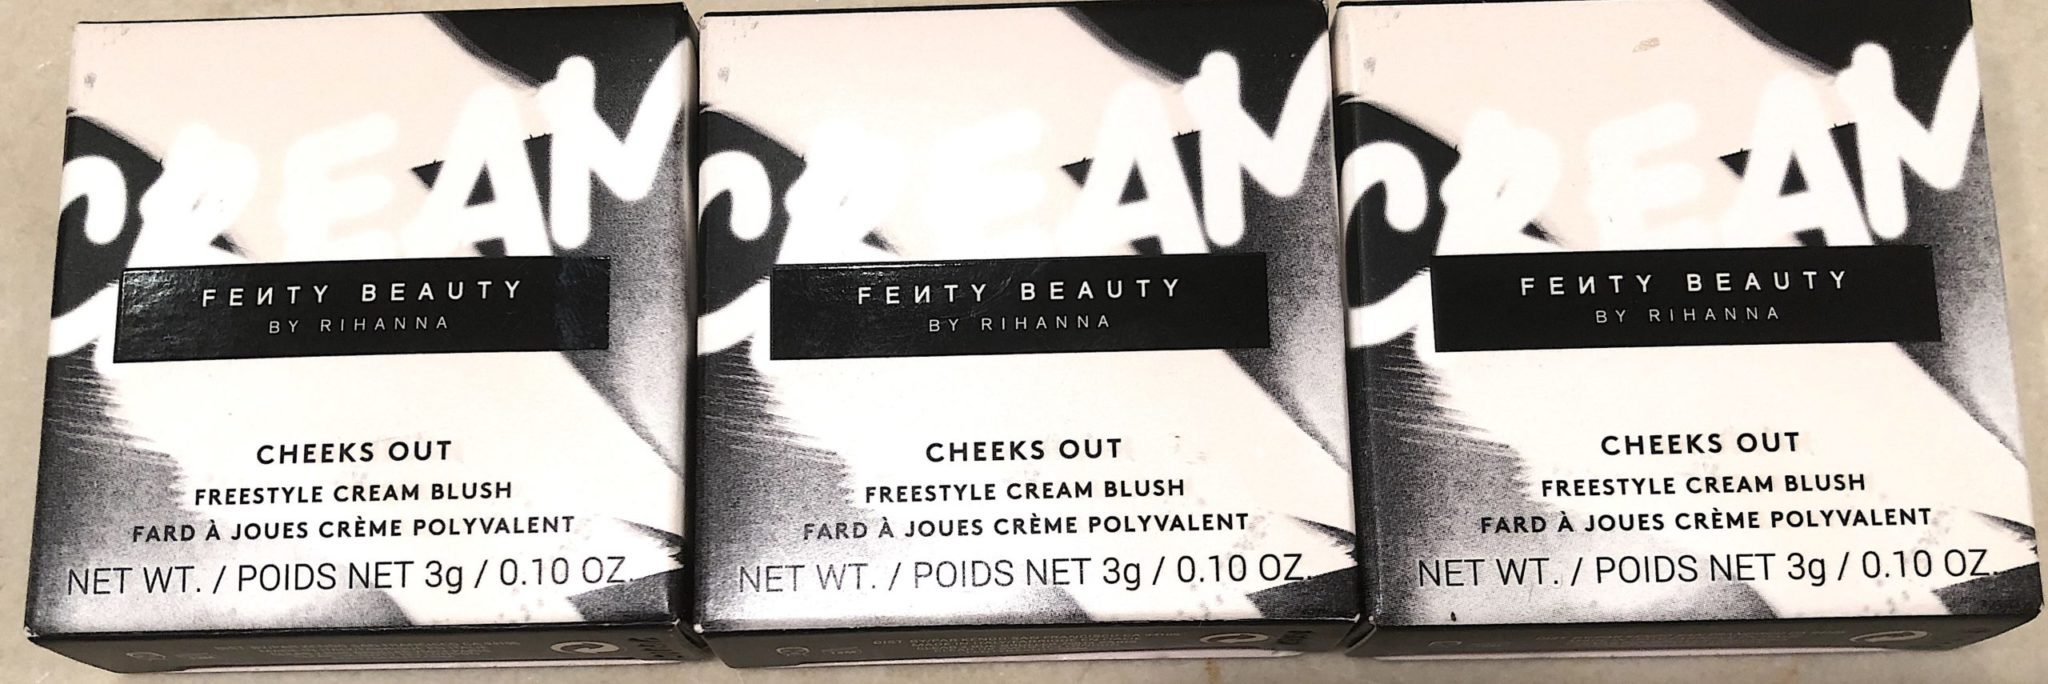 The outer box for Fenty Cheeks Out